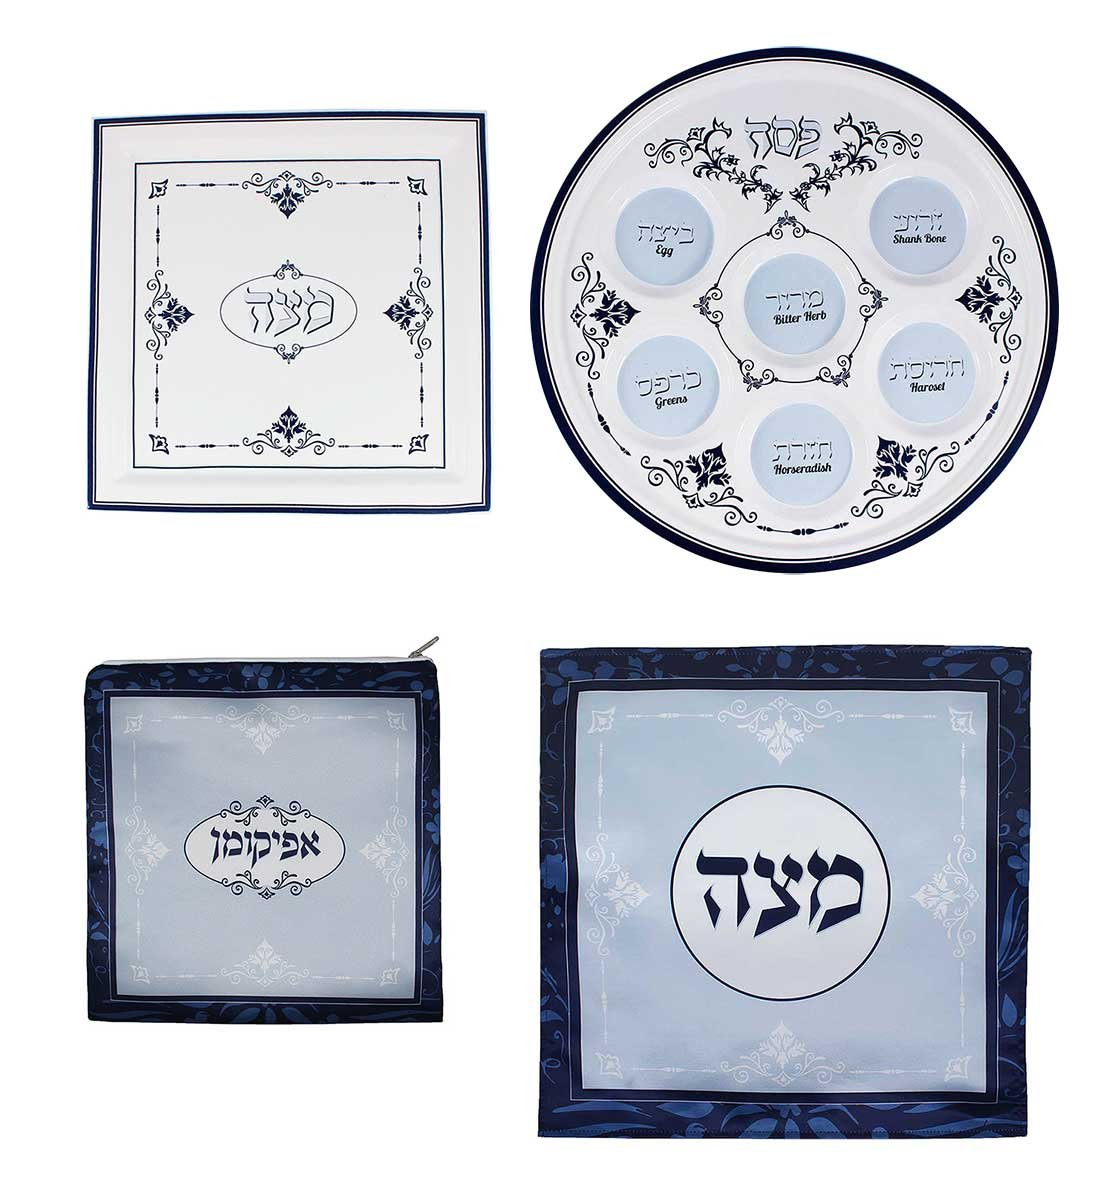 Zion Judaica Passover Seder TableTop Renaissance Collection Seder Plate, Matzah Plate, Matzah Cover Square or Round, Afikomen Bag Available Individually or Complete Set (Complete Set (Square Cover))